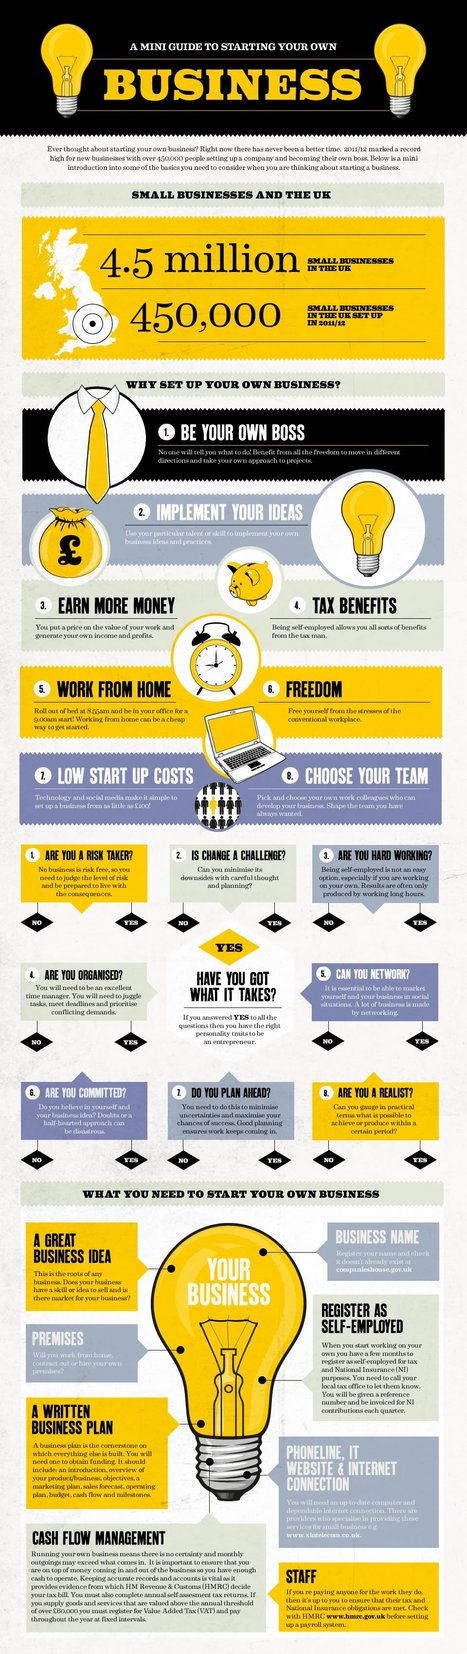 The Facts On The Benefits Of Starting Your Own Business | Sales & Relationship Management | Scoop.it